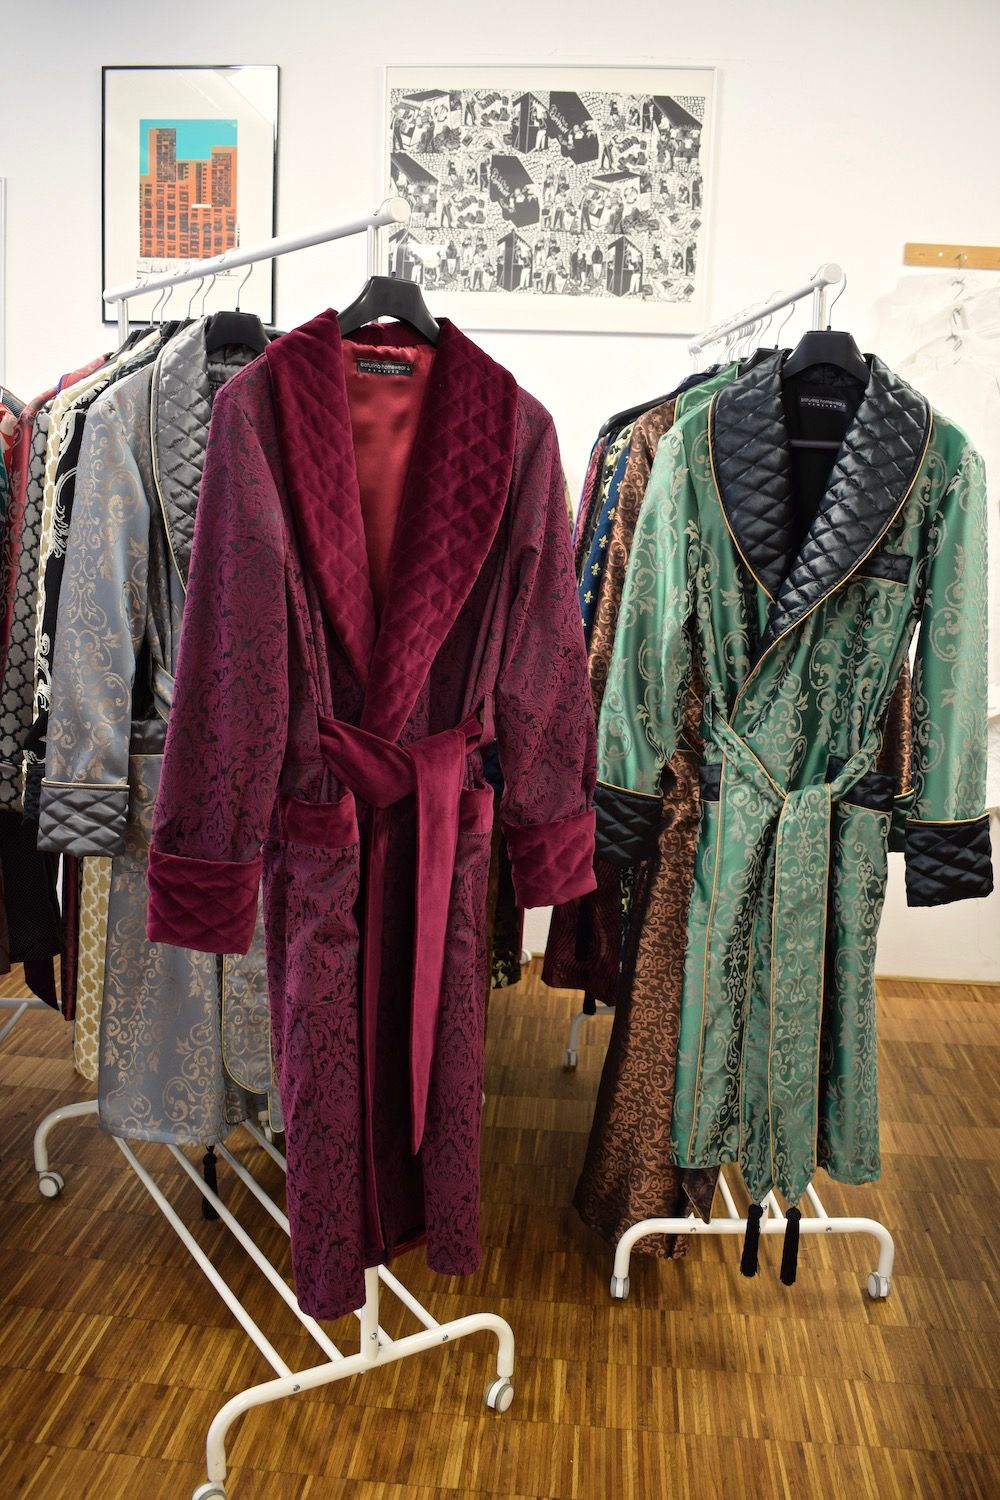 16d30fe467fadb Men's luxury velvet and quilted silk dressing gown. Gentleman's classic  lounge robe. Vintage style